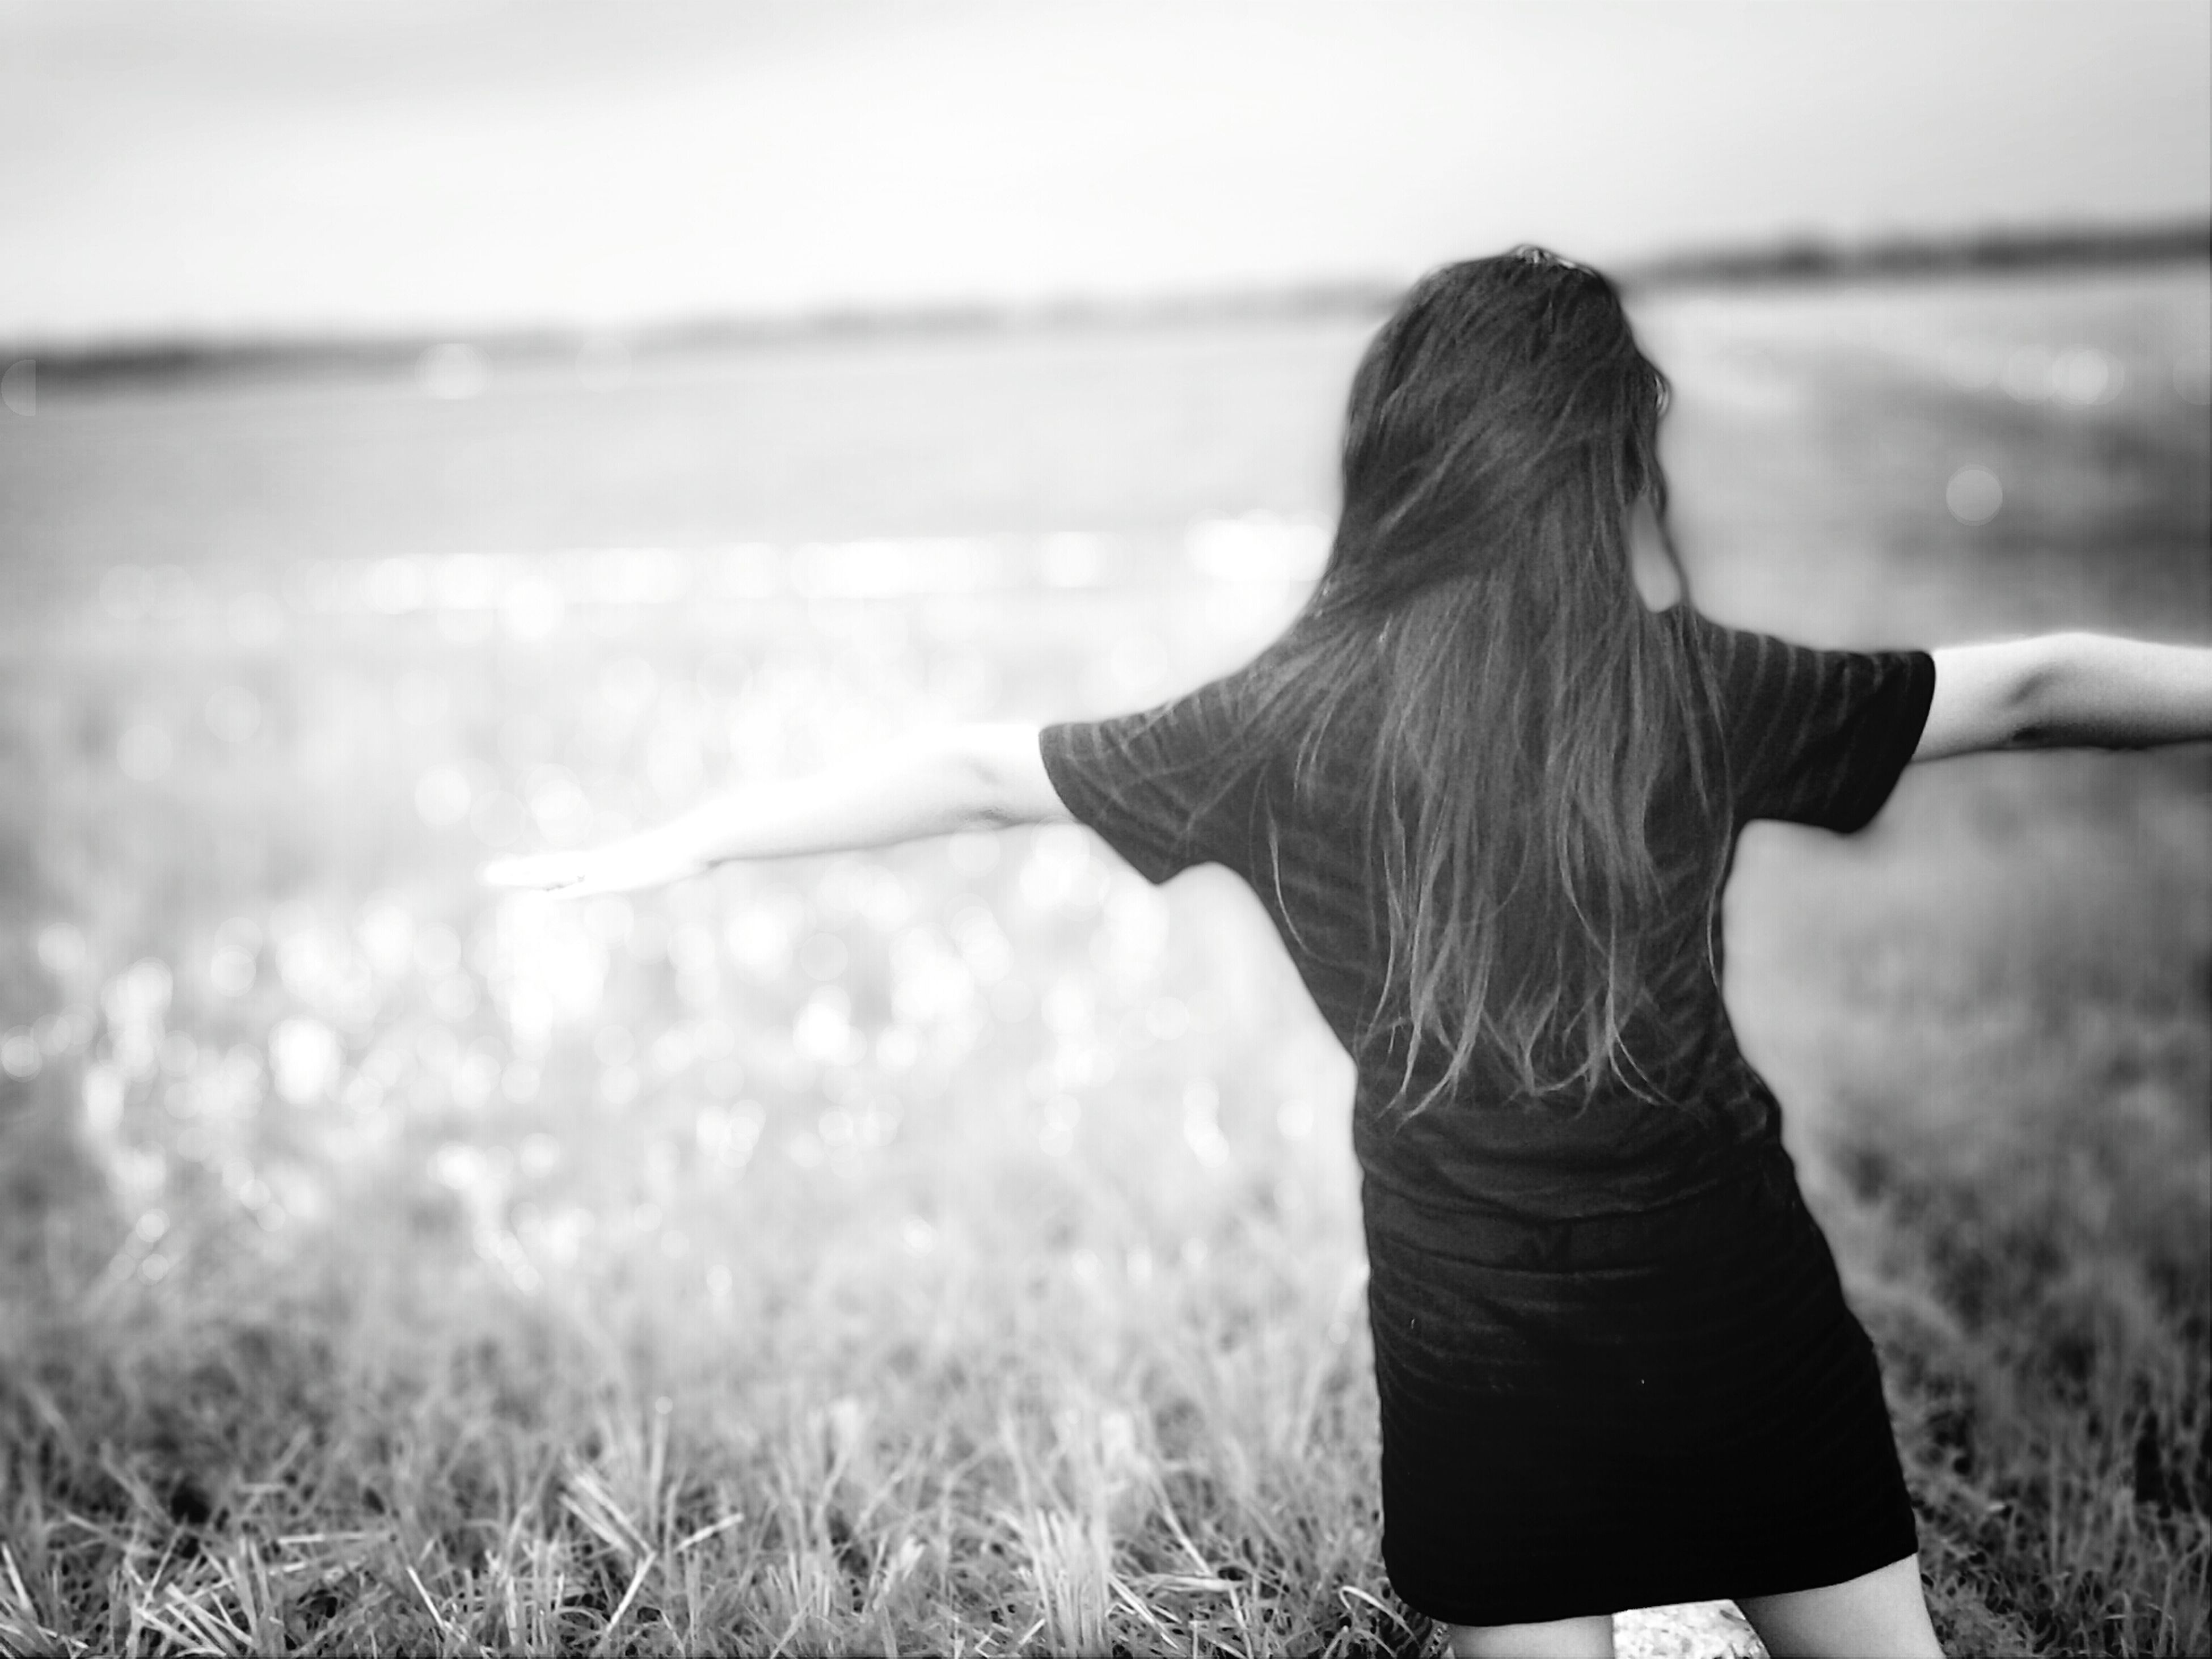 rear view, lifestyles, leisure activity, focus on foreground, water, grass, person, standing, tranquility, field, nature, tranquil scene, long hair, sky, lake, beauty in nature, outdoors, casual clothing